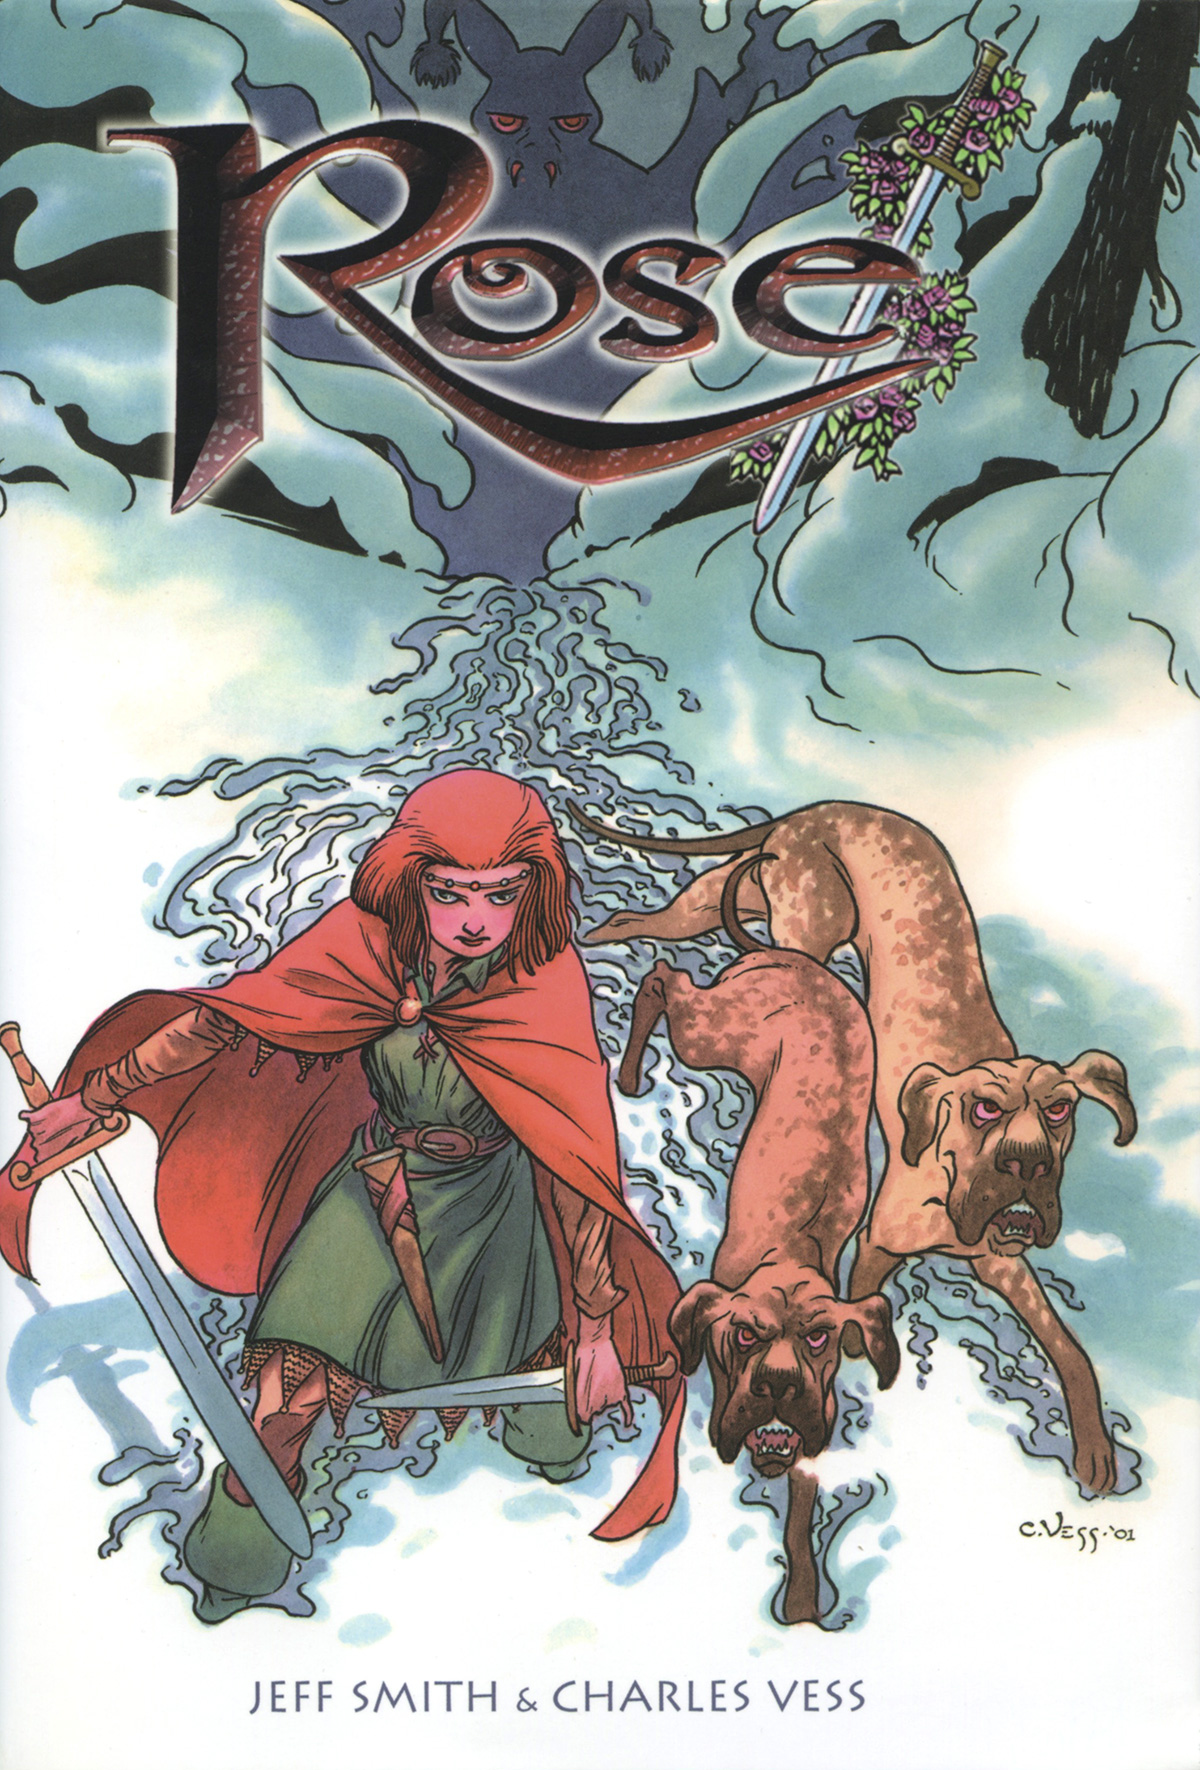 Rose by Jeff Smith and Charles Vess